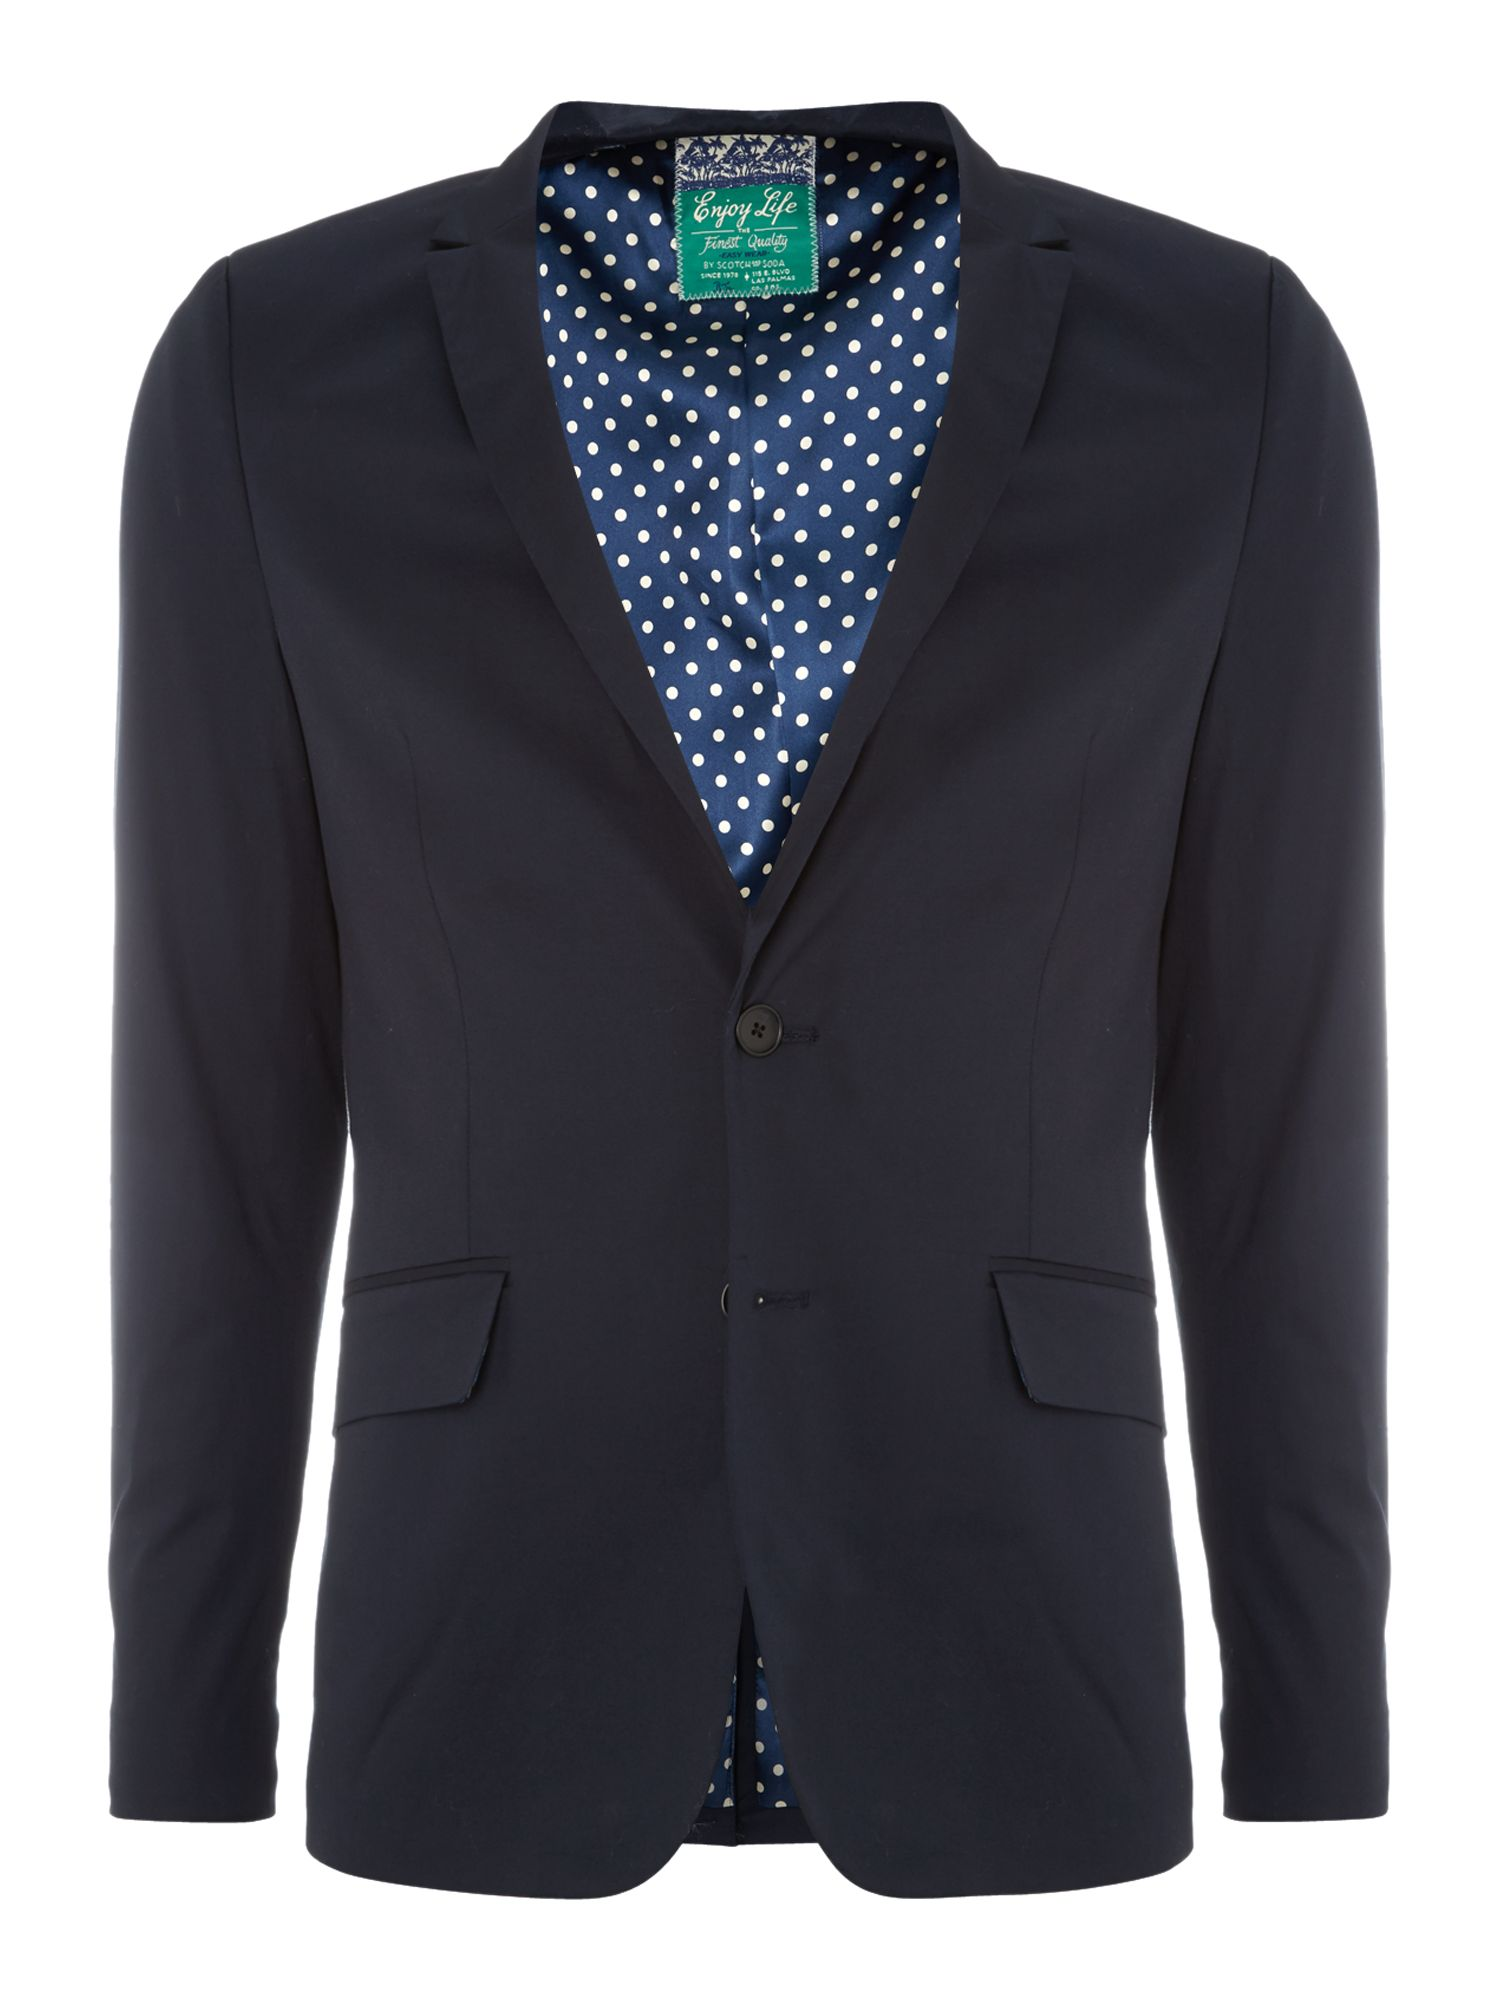 Chic two buttoned blazer in mercerized cotton